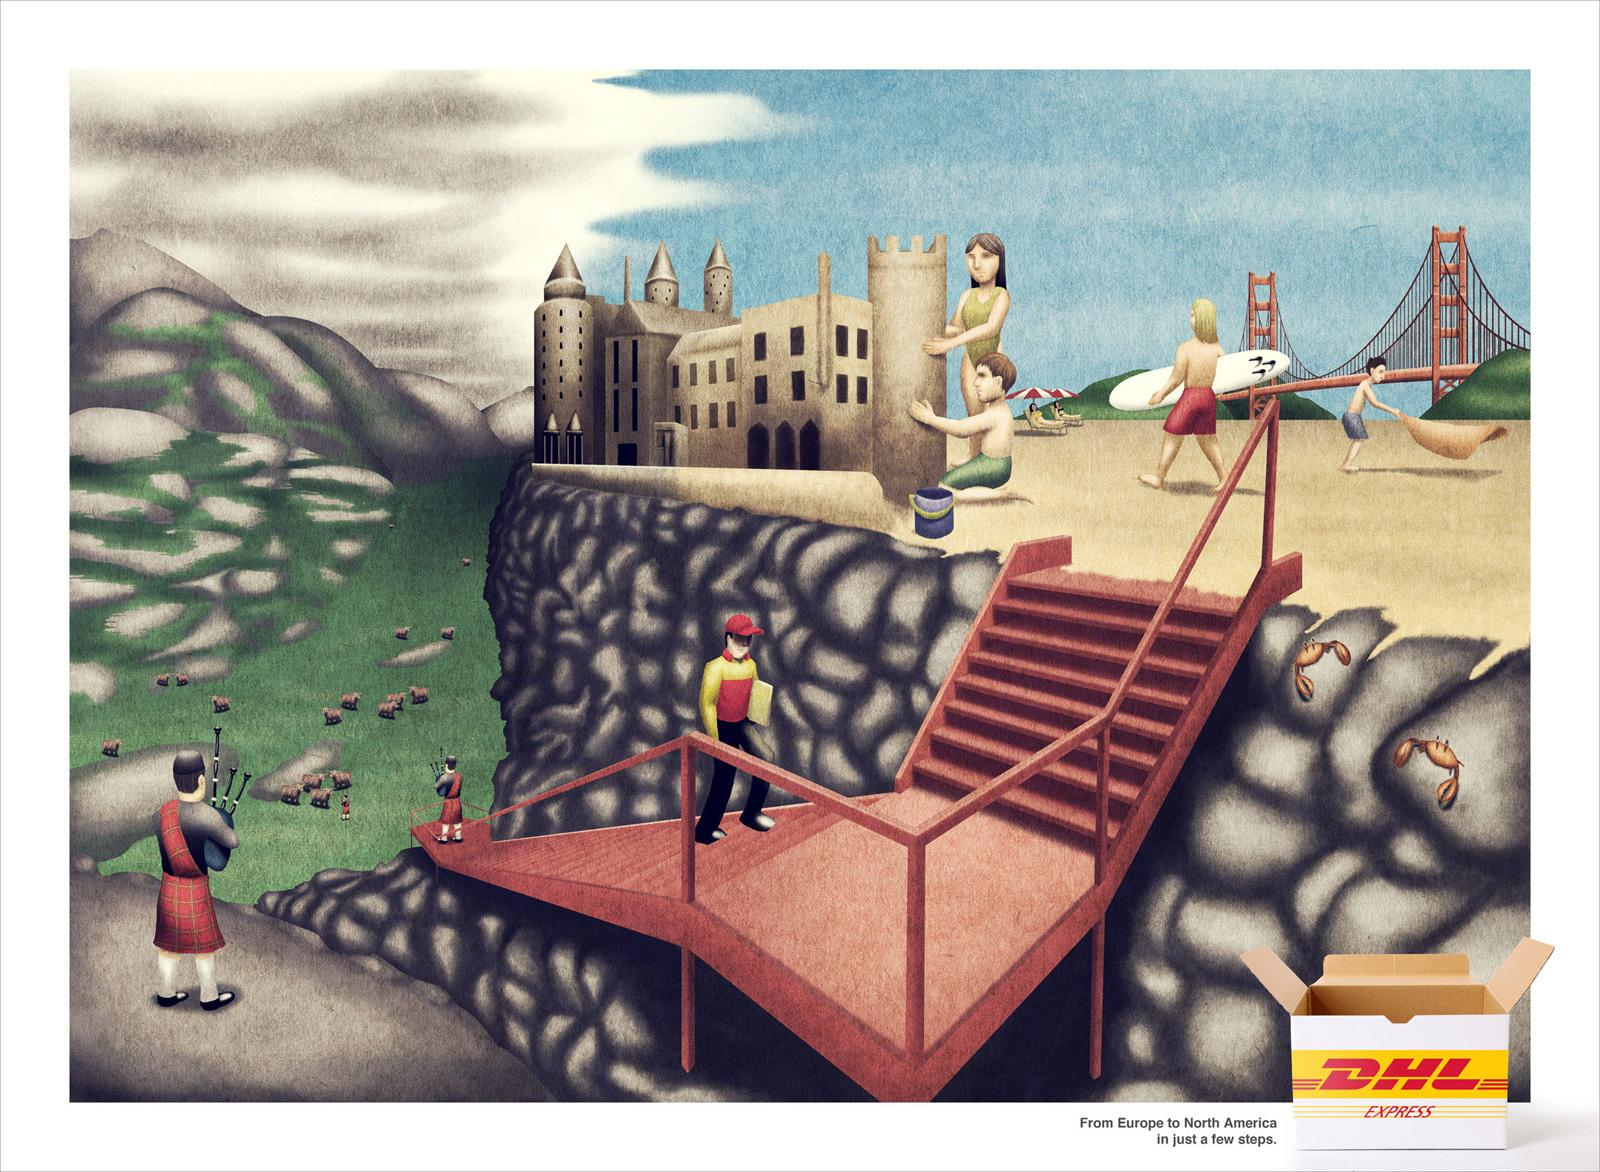 DHL Print Ad -  From Europe to North America in just a few steps